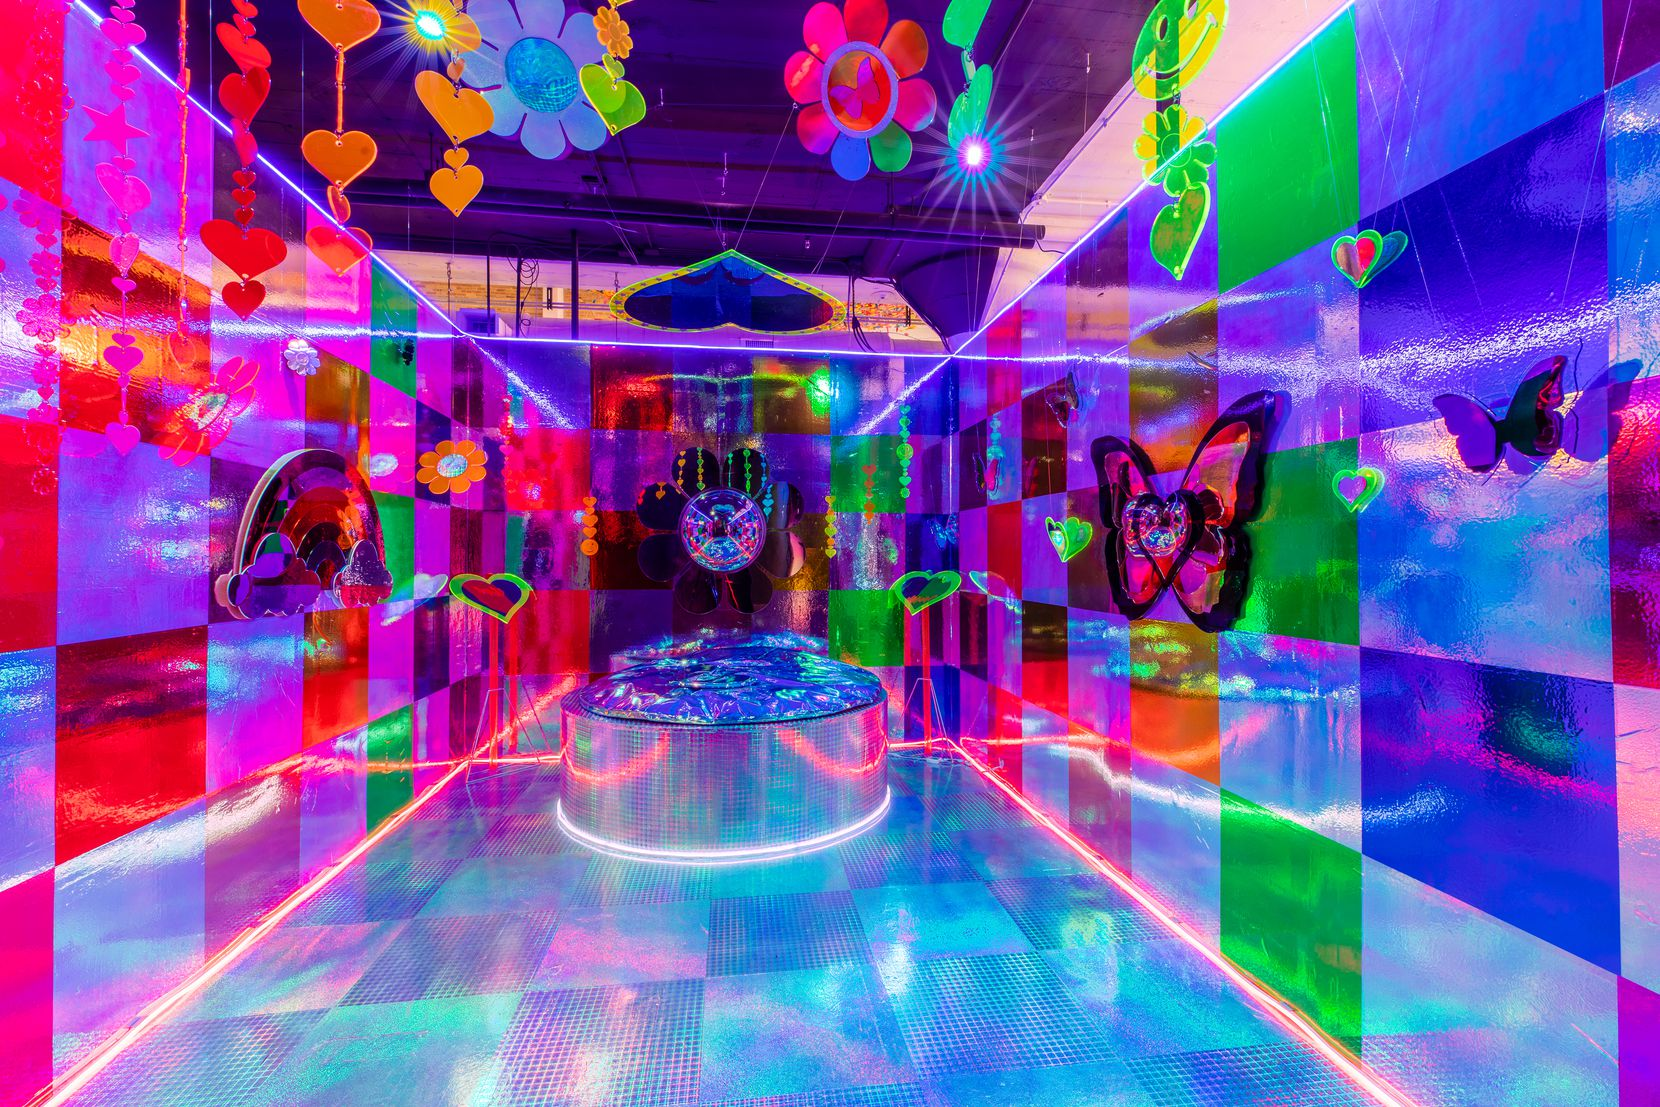 Bright colors and interactive experiences abound at the Wndr museum in Chicago.